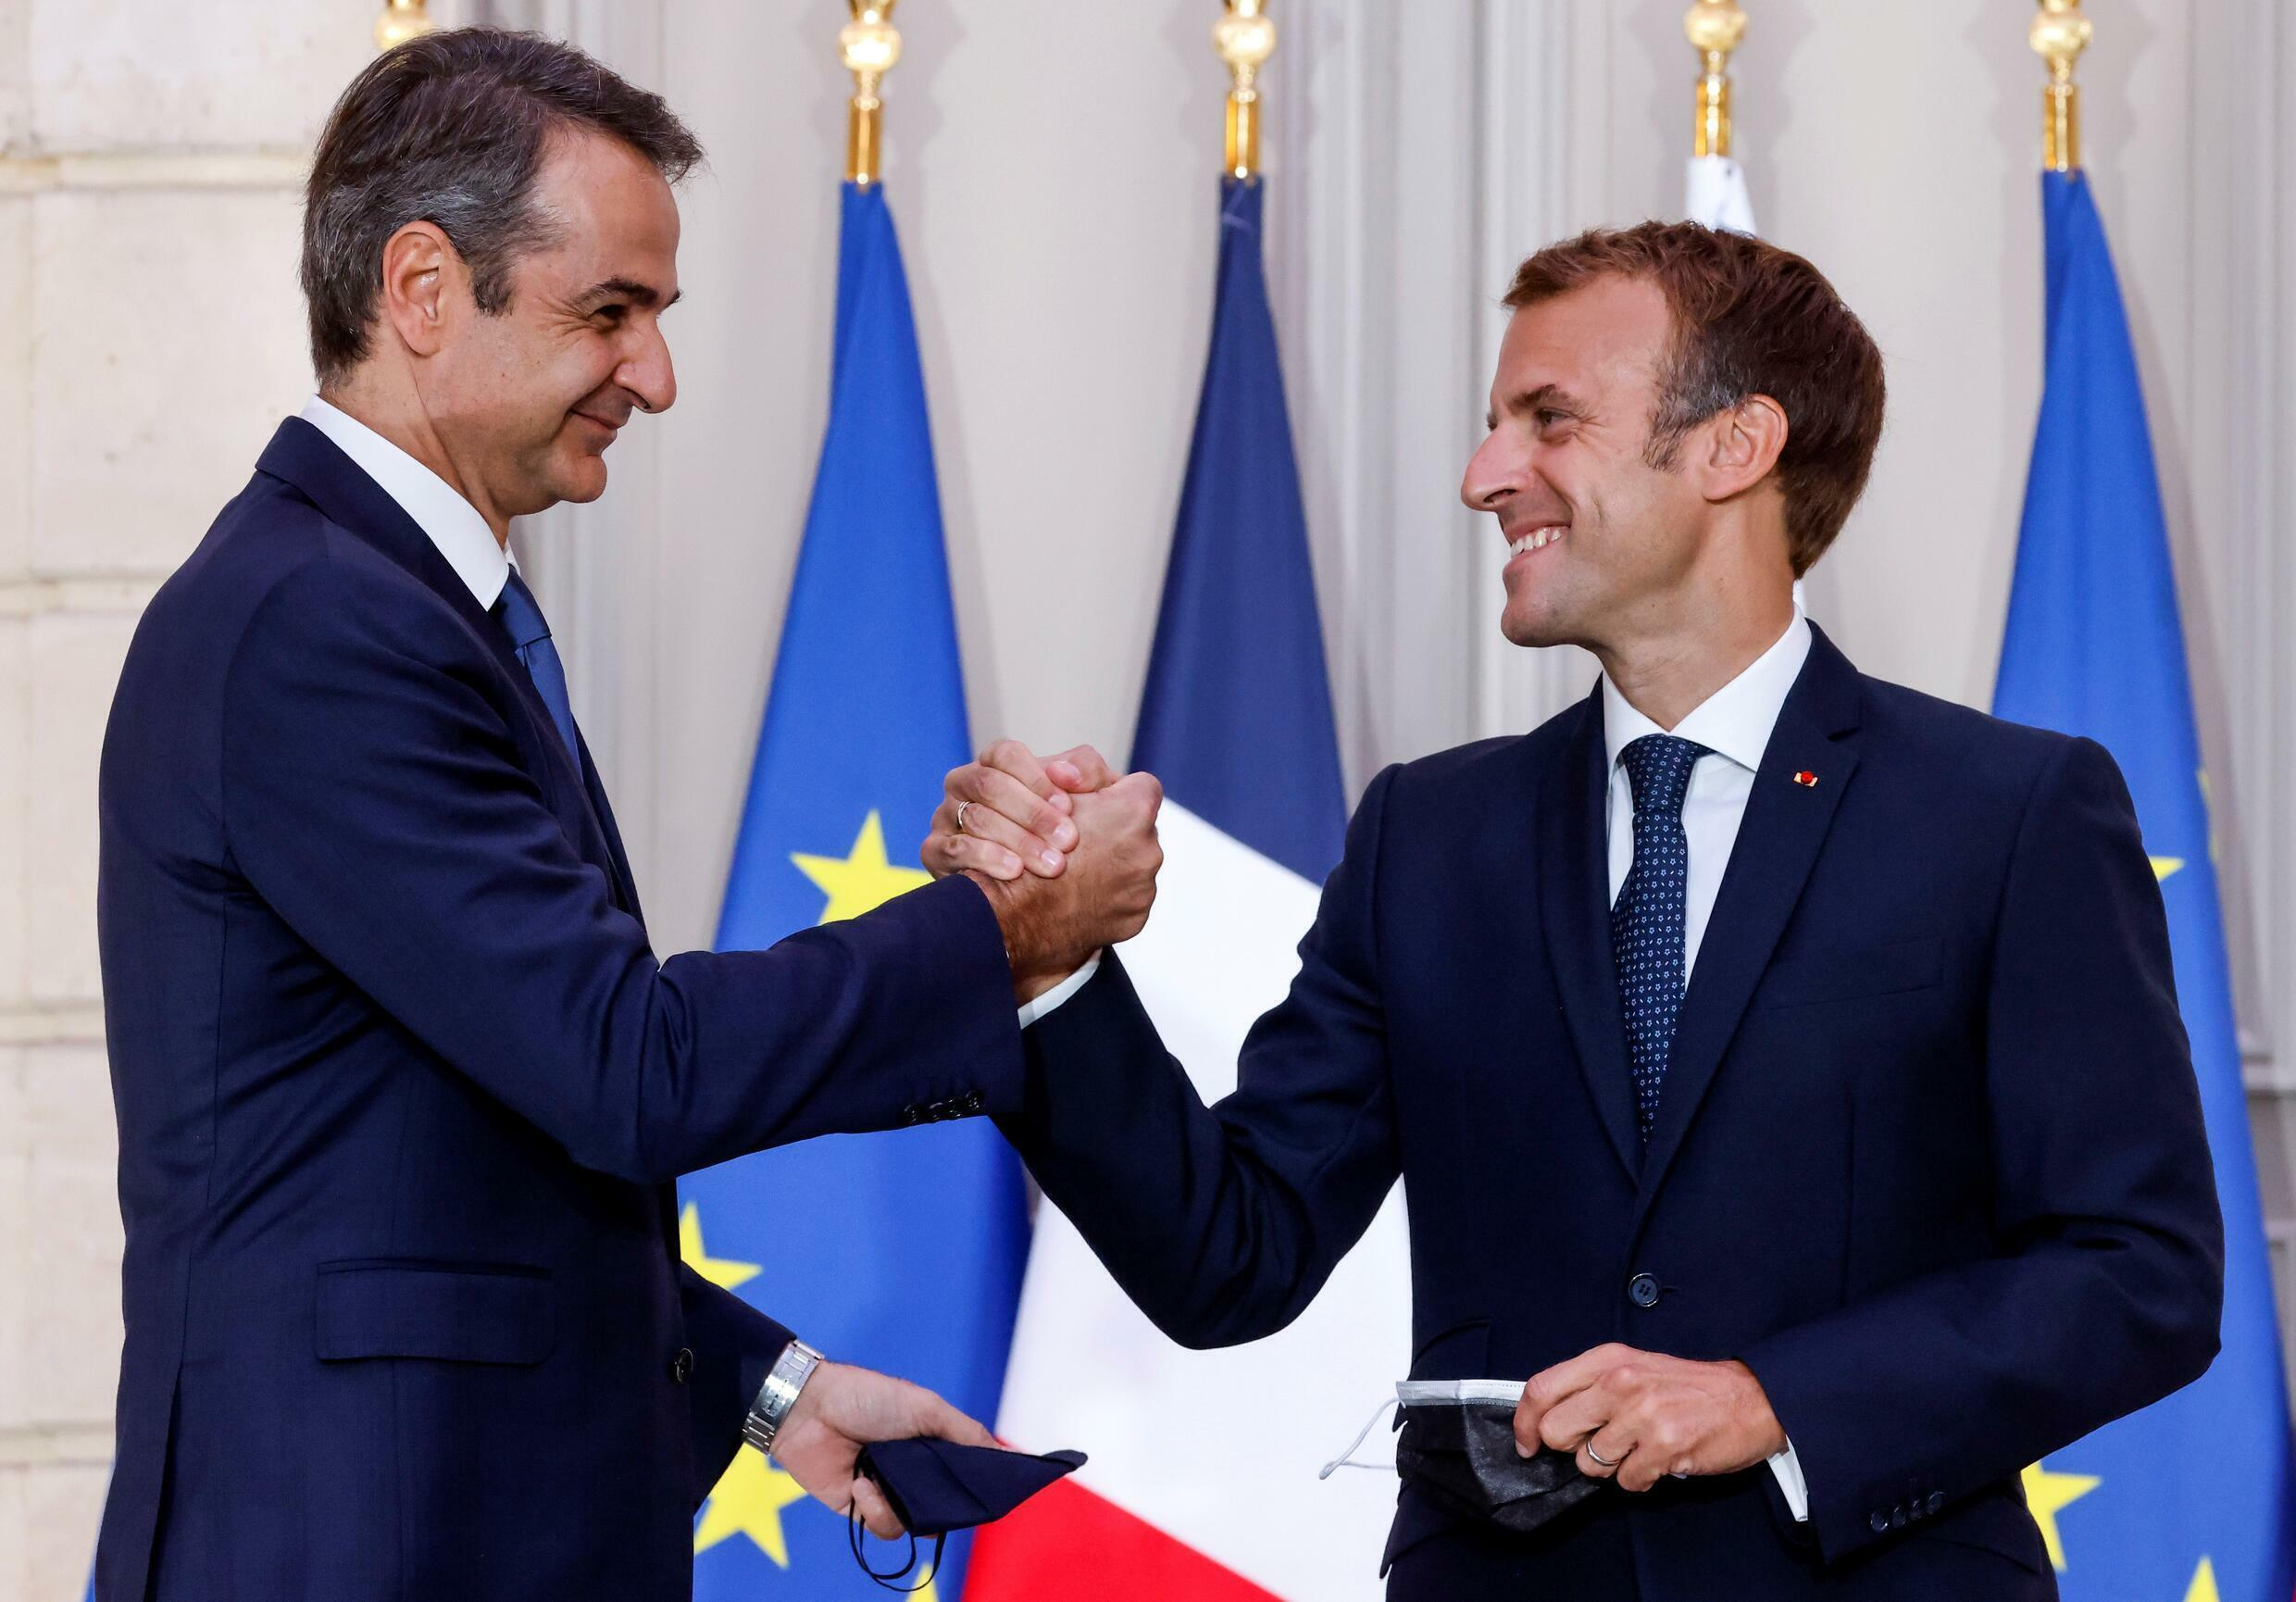 Macron (R) signed the ship deal with Greek Prime Minister Kyriakos Mitsotakis at the Elysee Palace in Paris